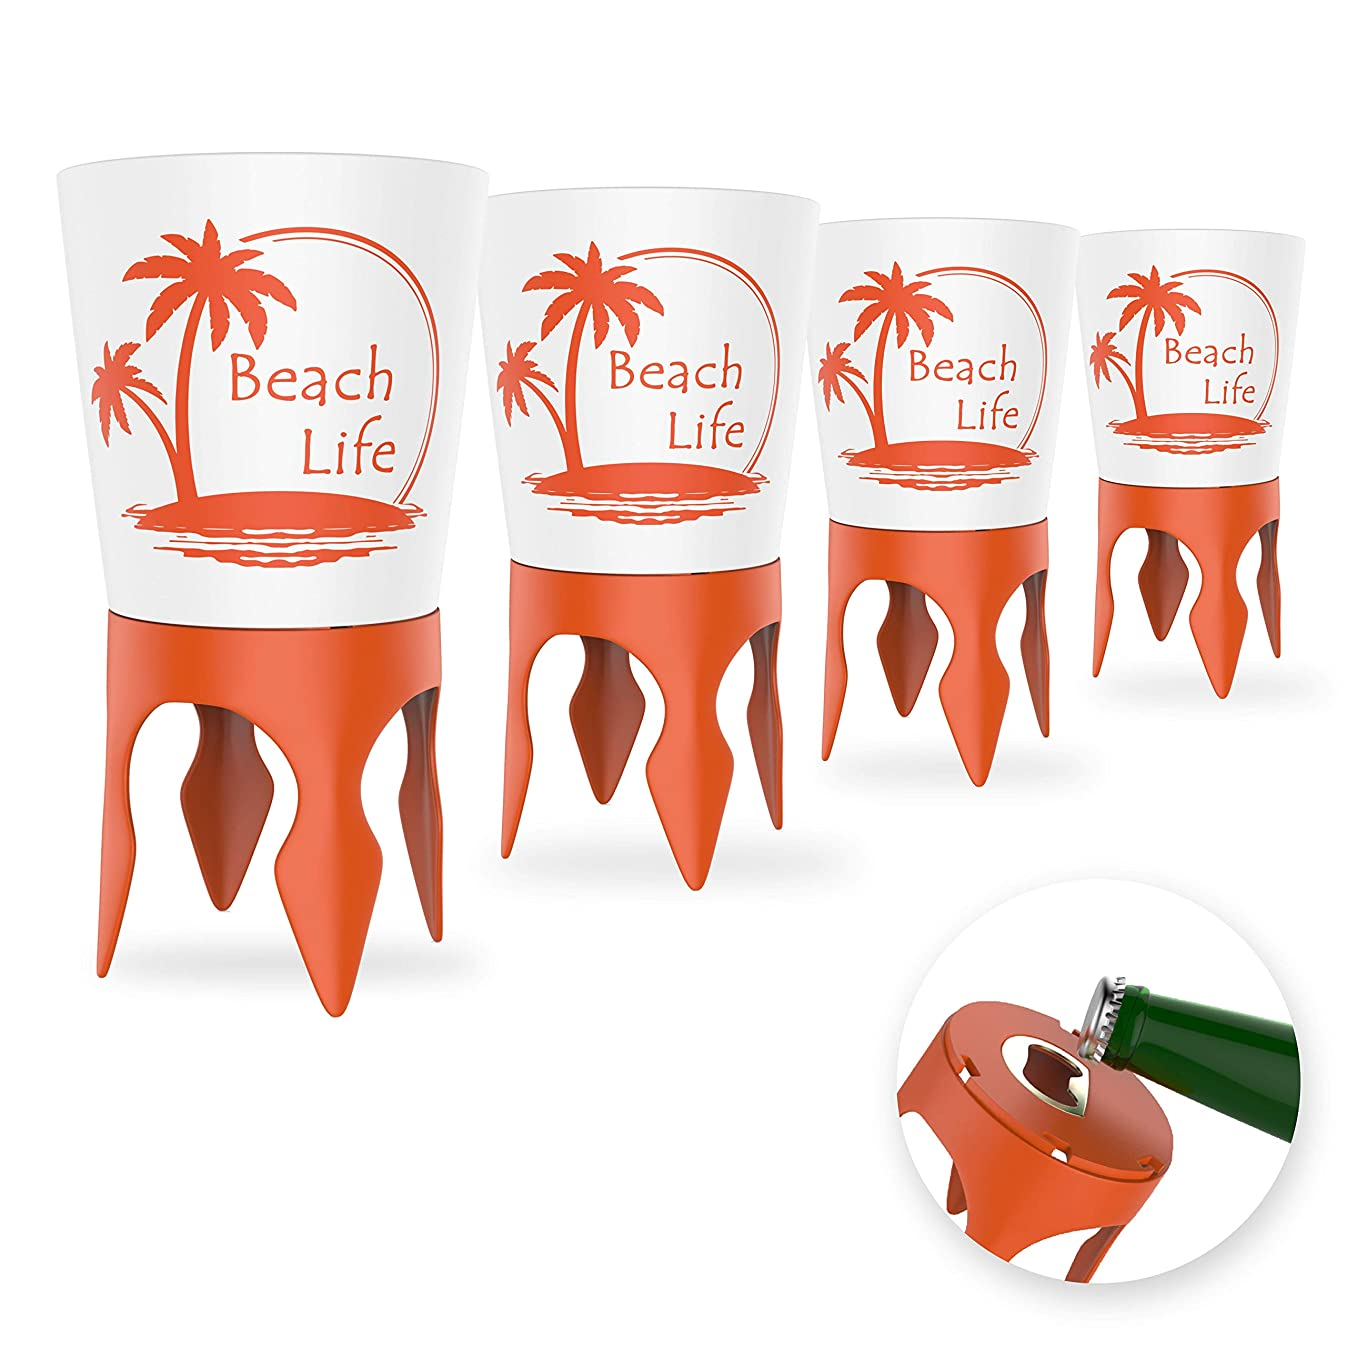 Beach Vacation Accessories: Beach Drink Cup Holder Sand with Bottle Opener and Spikes (4 Pack) | Spike Coaster Cups - Supplies Gear Essentials Stuff Items Necessities Must Haves for Adults Women Men